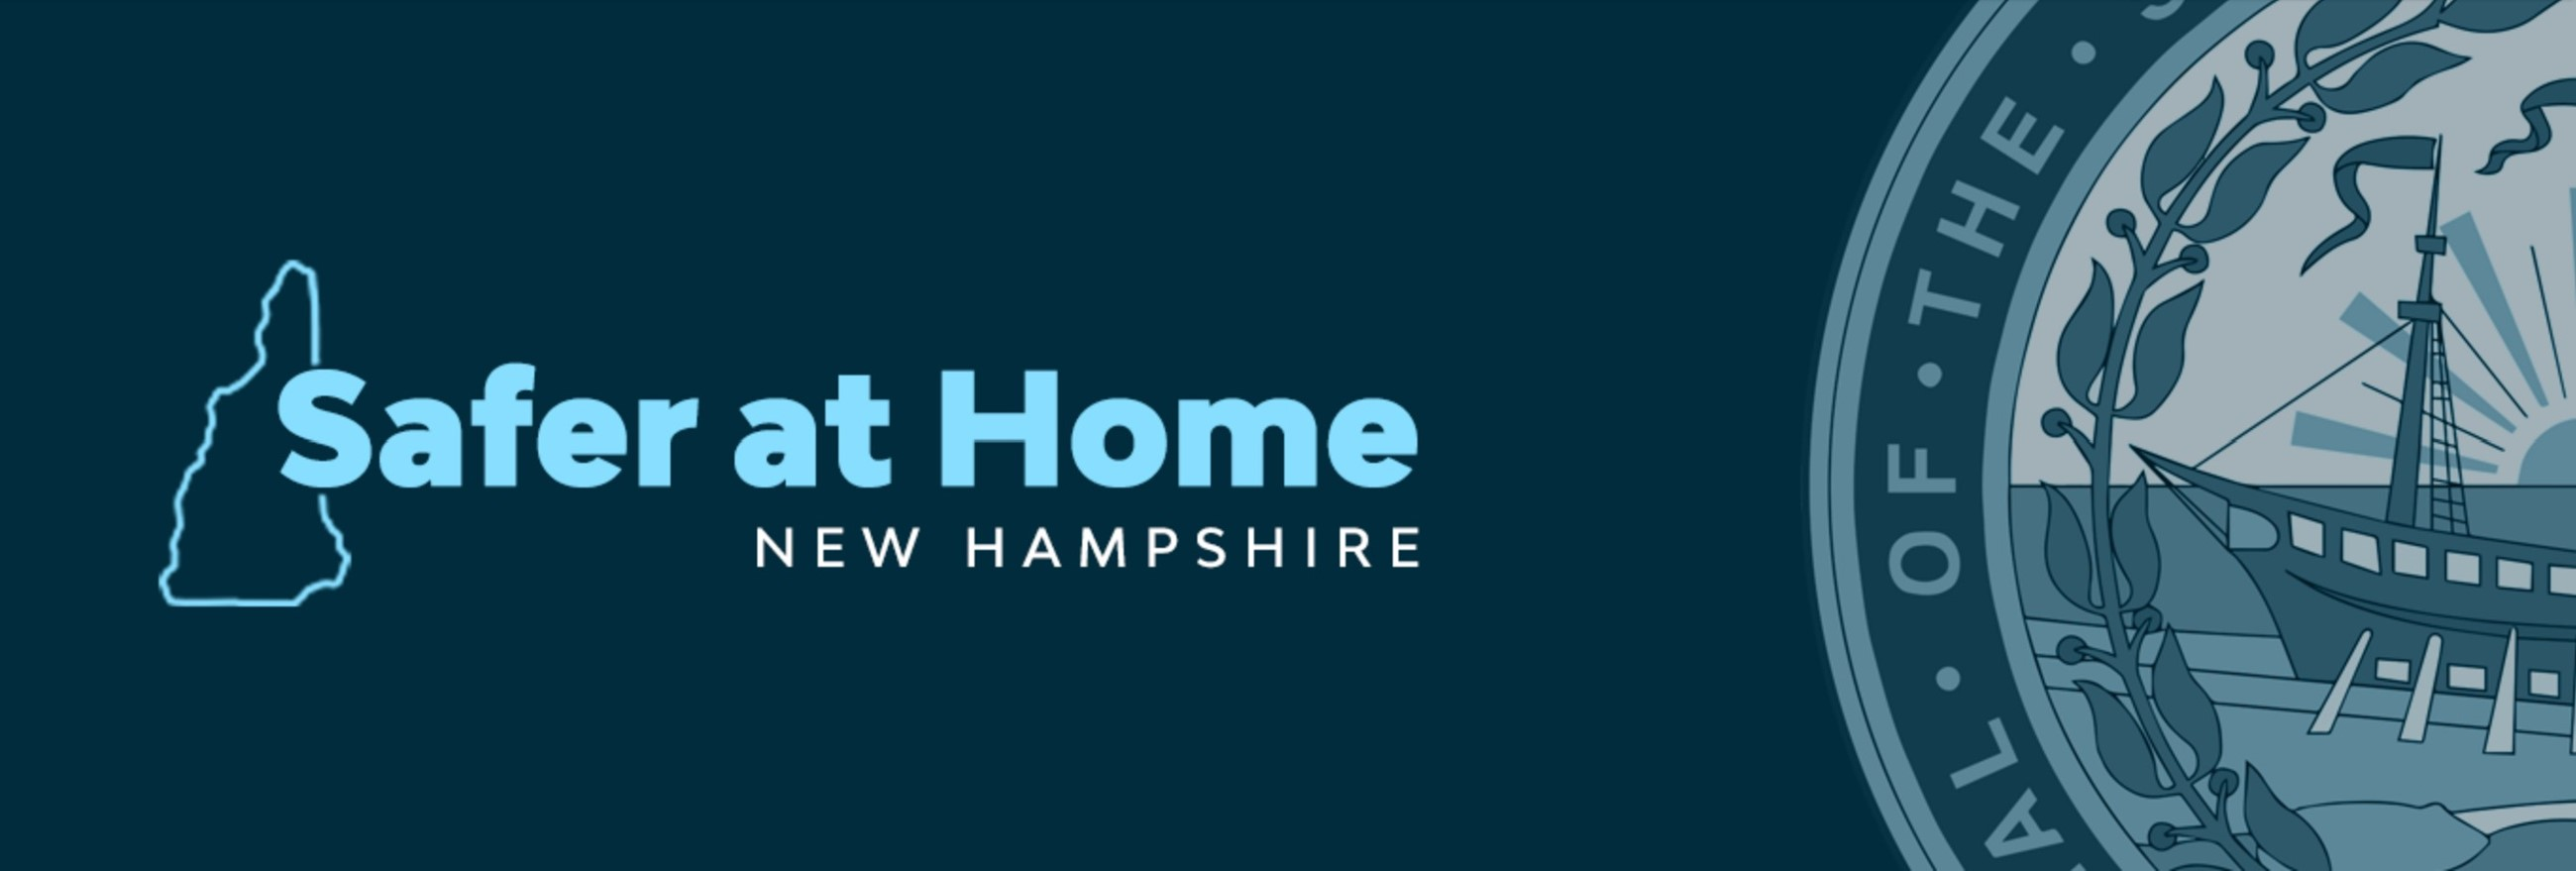 Safer at Home New Hampshire logo